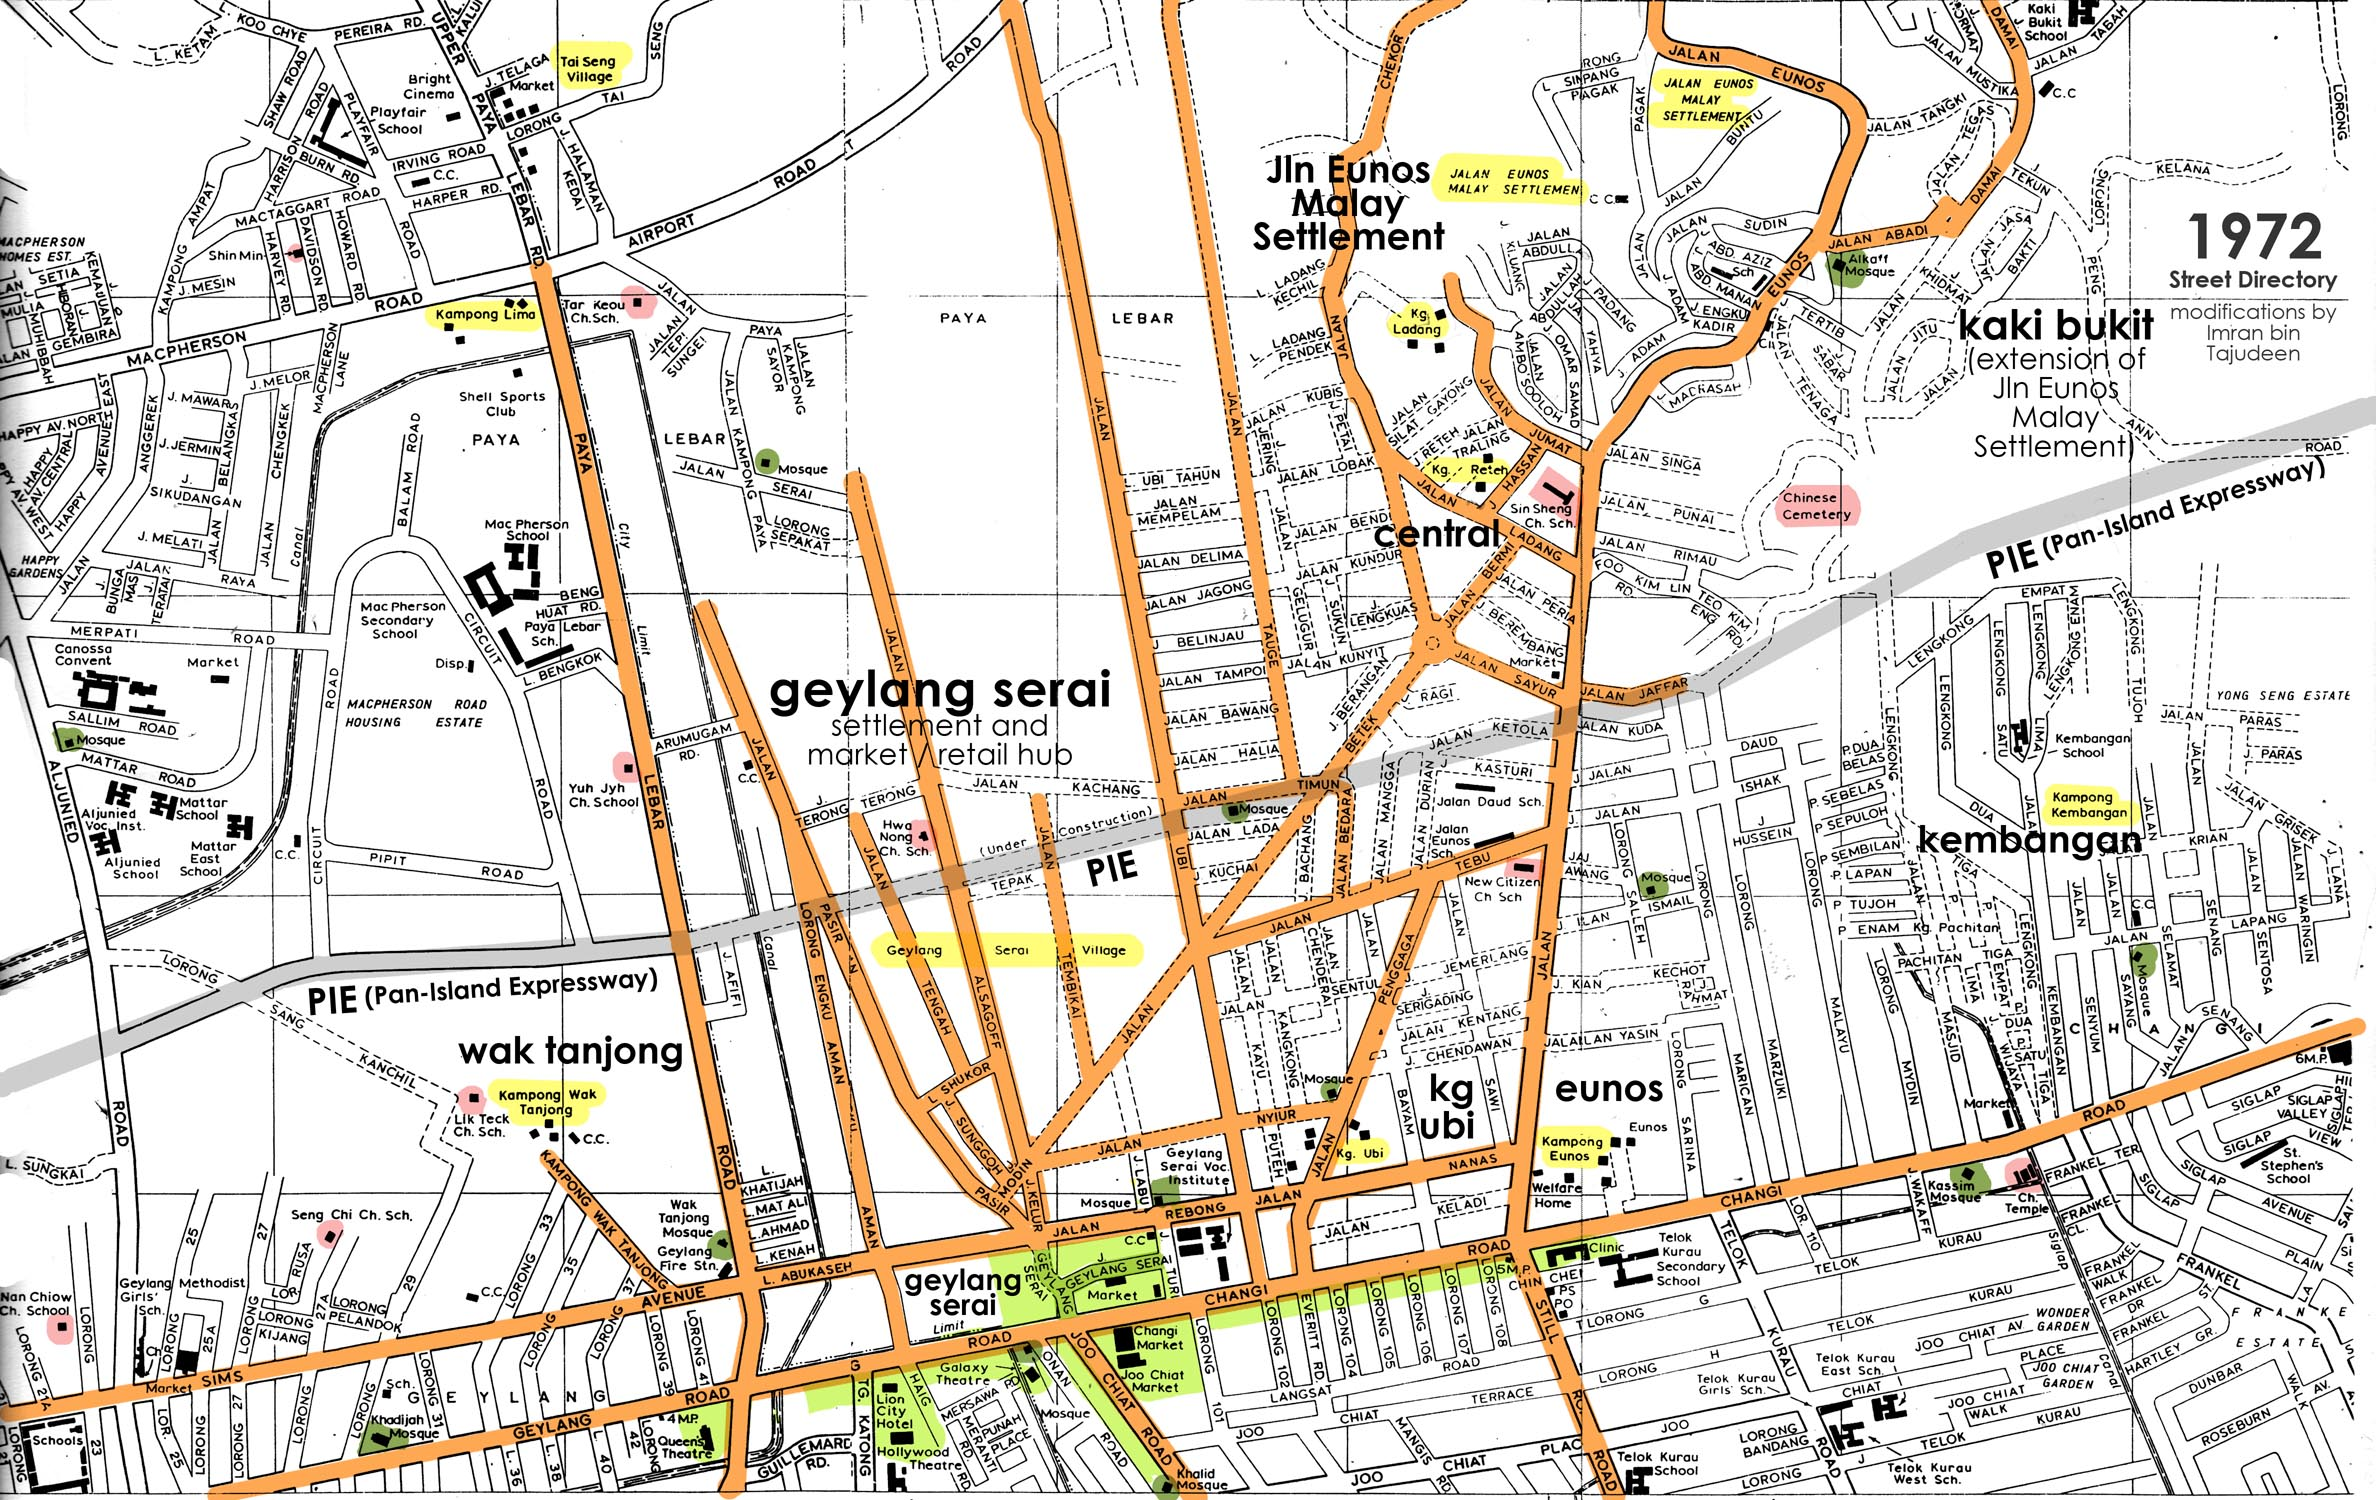 1972 Map showing the area around Geylang Serai, and the roads radiating out from Geylang Serai's commercial core to the surrounding suburbs:  Geylang Serai, KampungUbi, Jalan Eunos Malay Settlement, and Kaki Bukit. Source: Singapore Street Directory, with modifications by Imran bin Tajudeen.